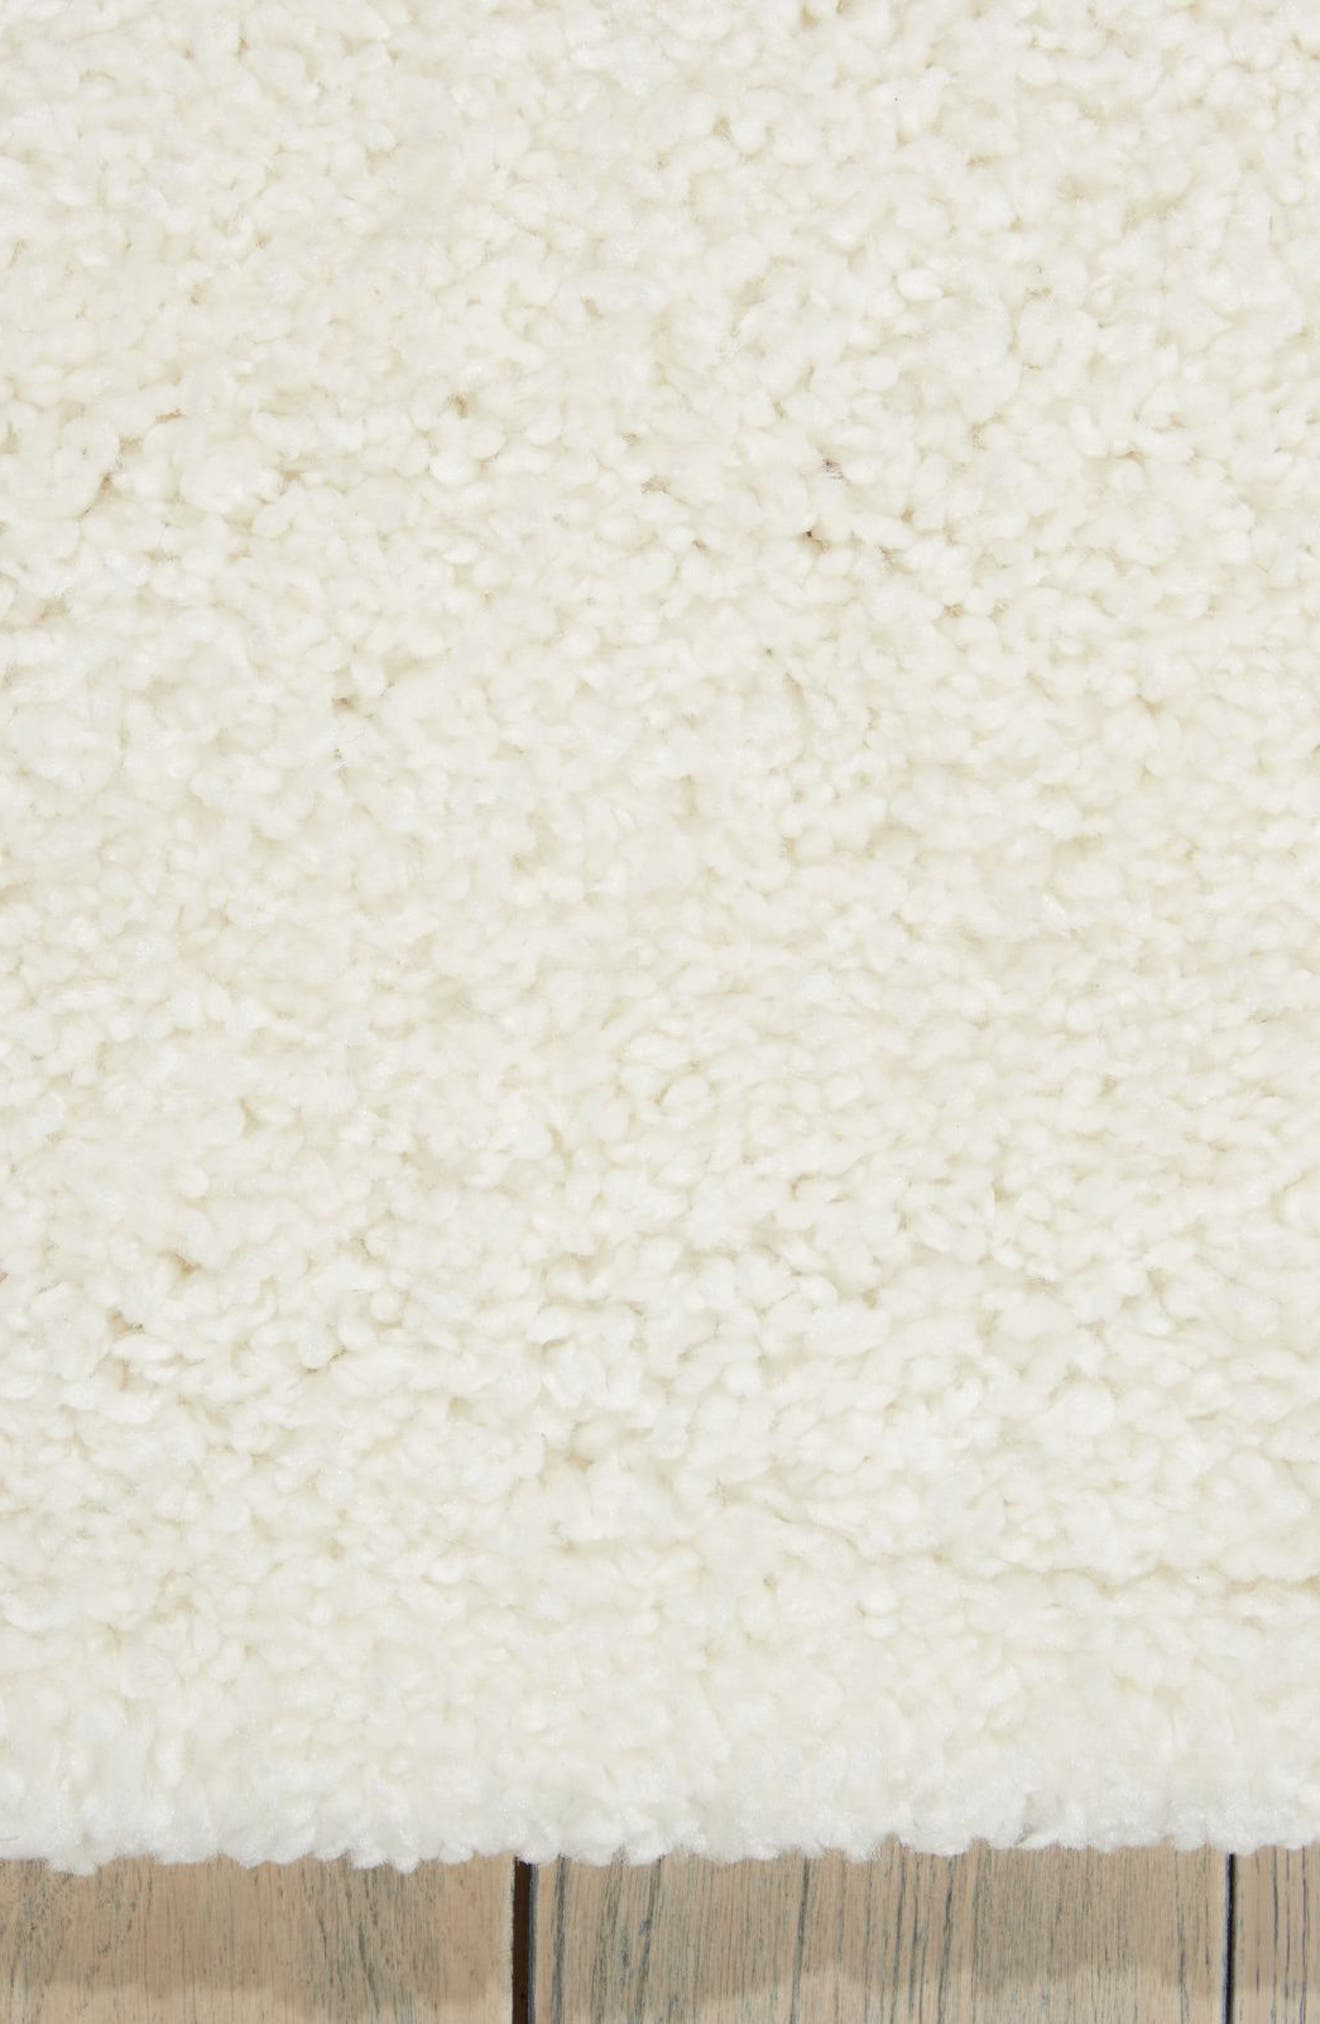 Riad Collection Shag Pile Area Rug,                             Alternate thumbnail 2, color,                             Ivory